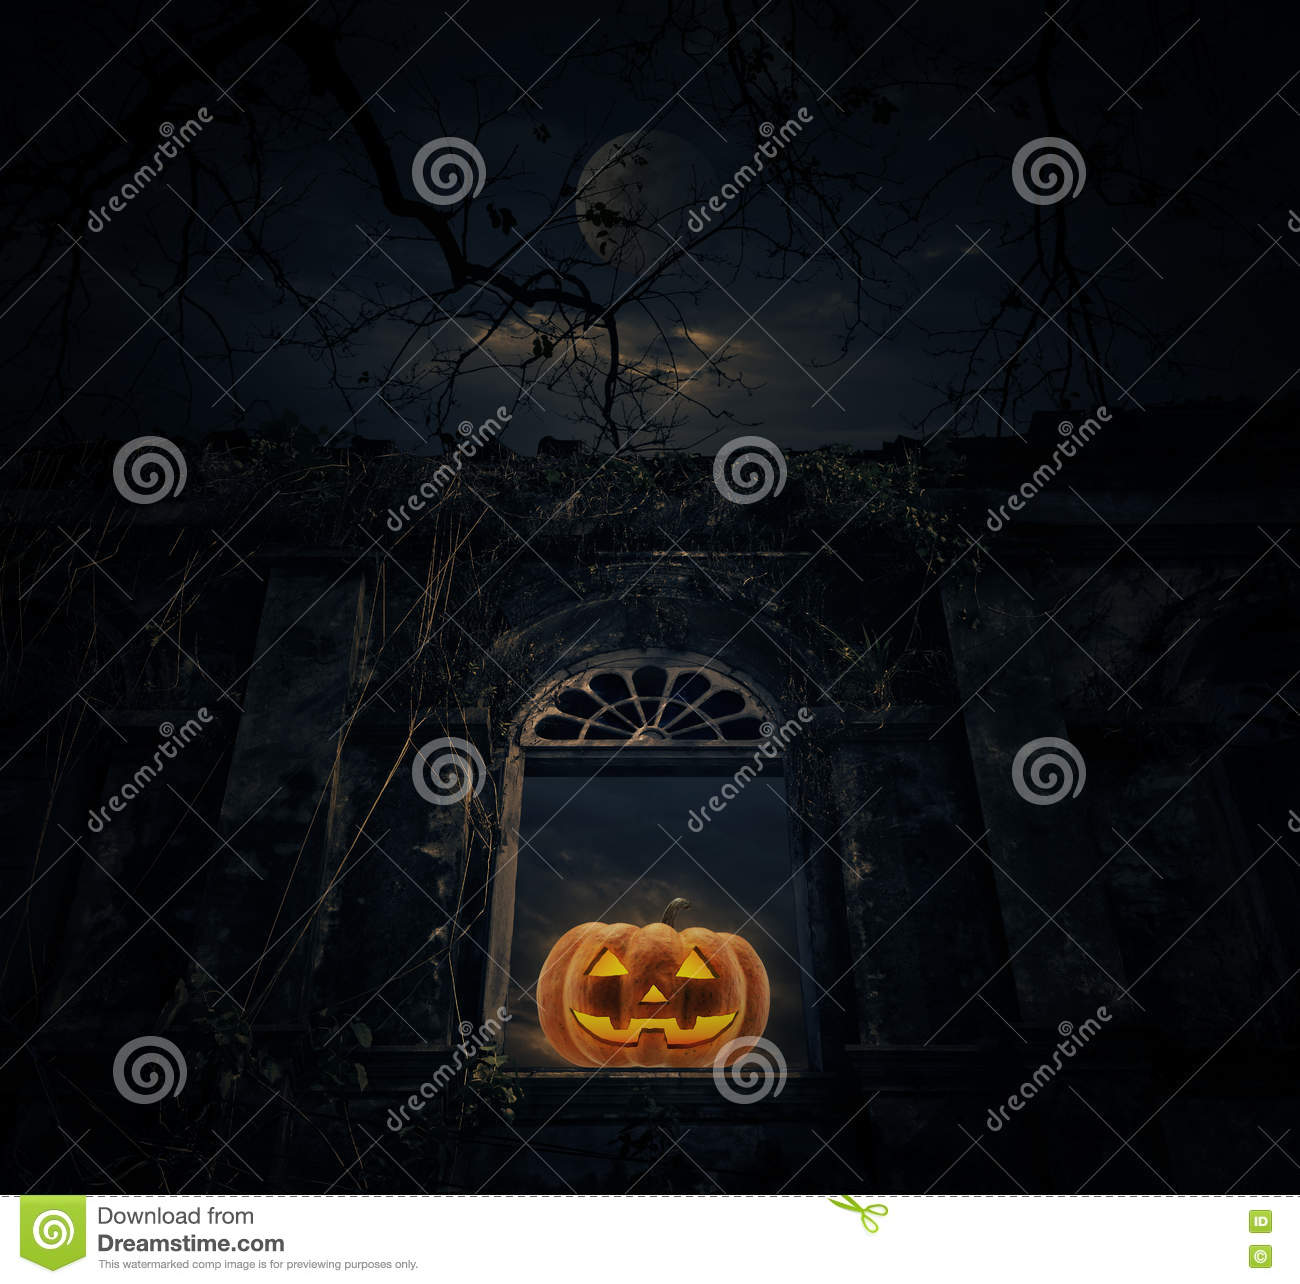 Jack O Lantern pumpkin with old ancient window castle over dead